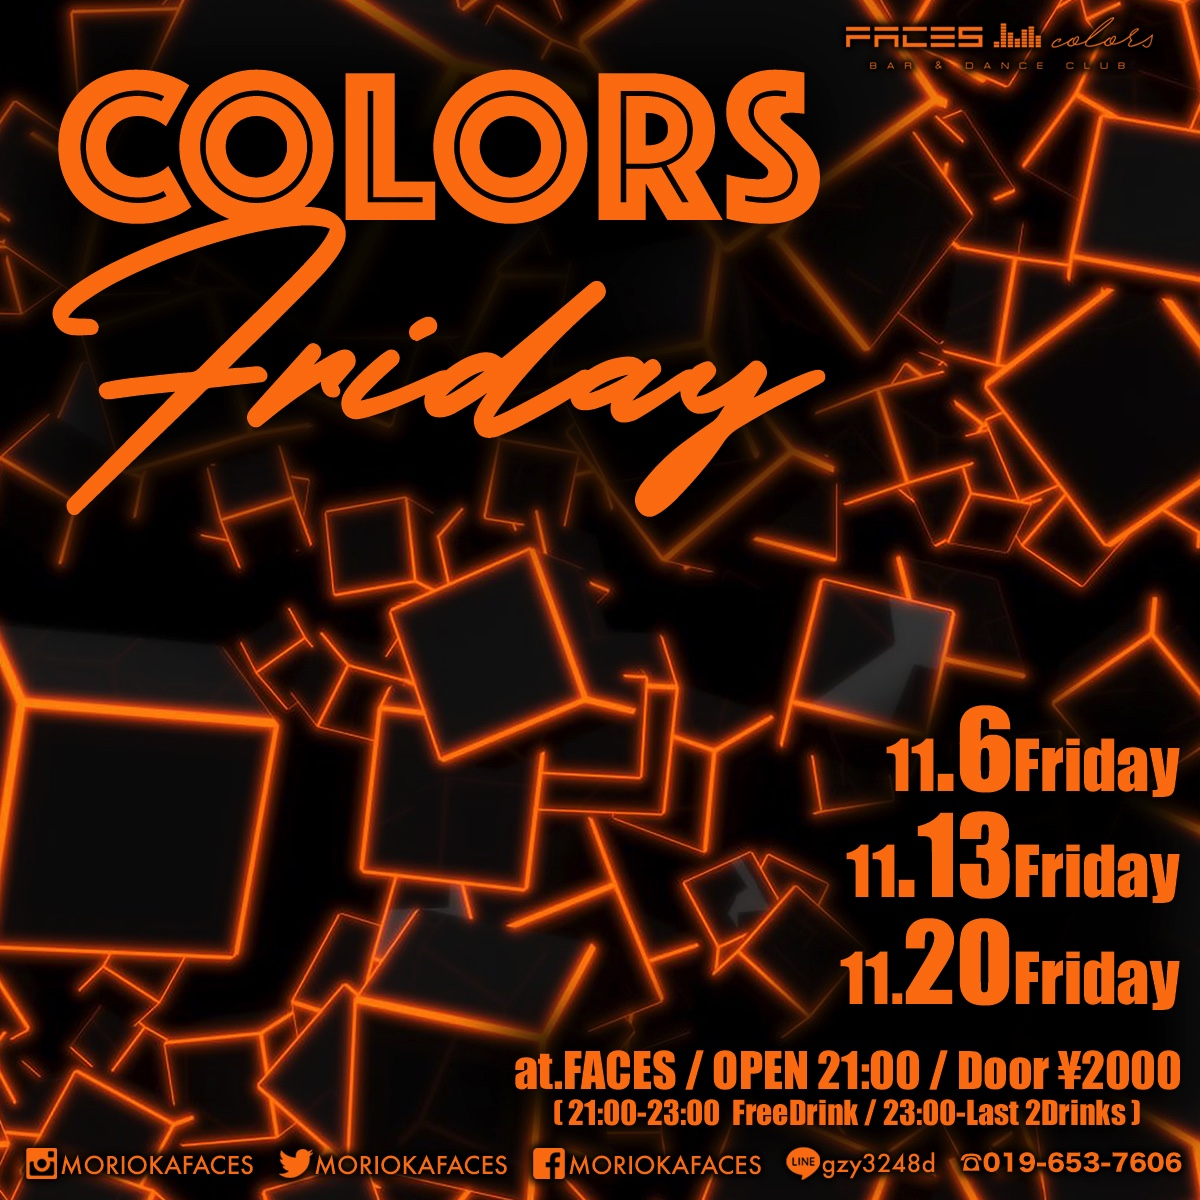 11.6(FRI) COLORS FRIDAY